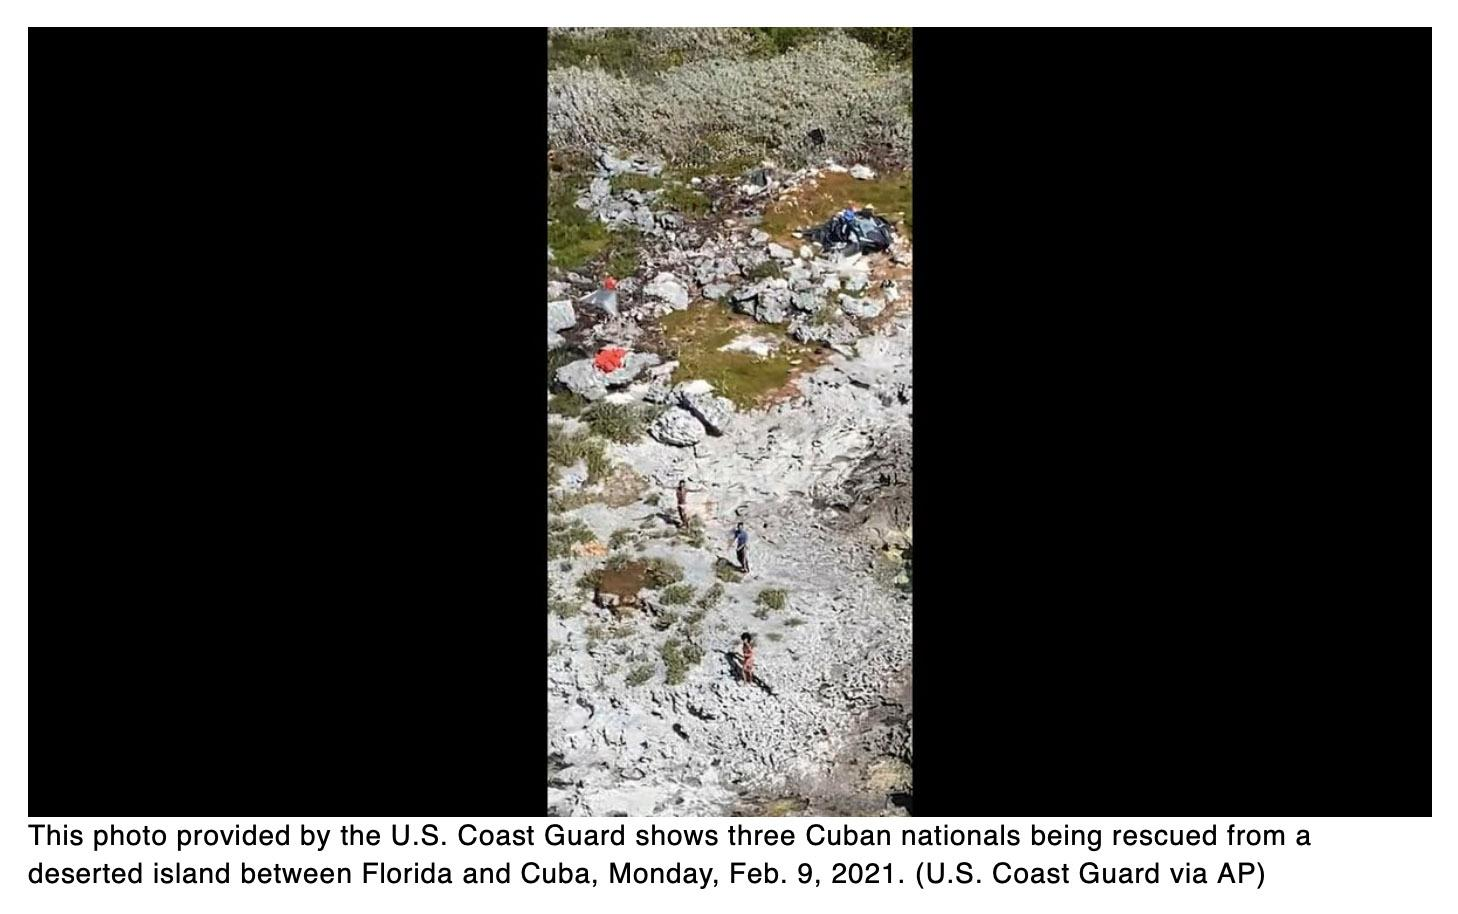 Coast Guard rescues 3 Cubans stranded on island for 33 days